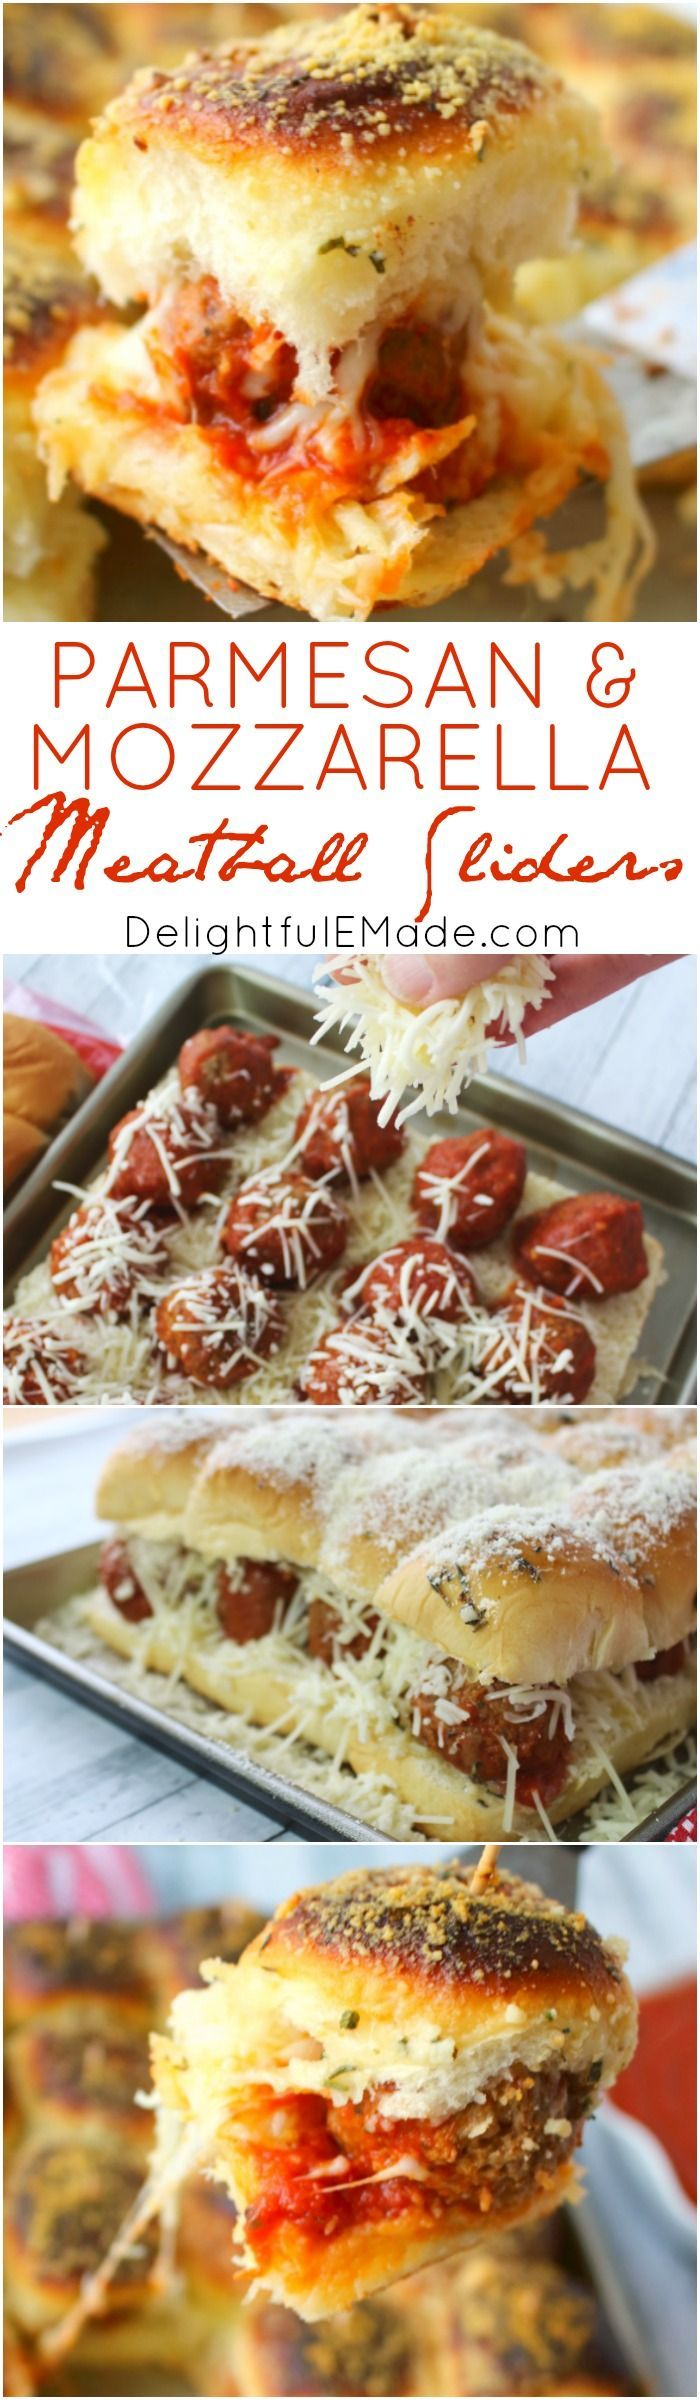 Football food doesn't get much better than this! Like a mini version of a meatball sub, these amazing Parmesan & Mozzarella Meatball Sliders are the perfect party food! Super-simple to make, this easy slider recipe is great for serving at your next watch party and also makes for a great pot-luck dish.